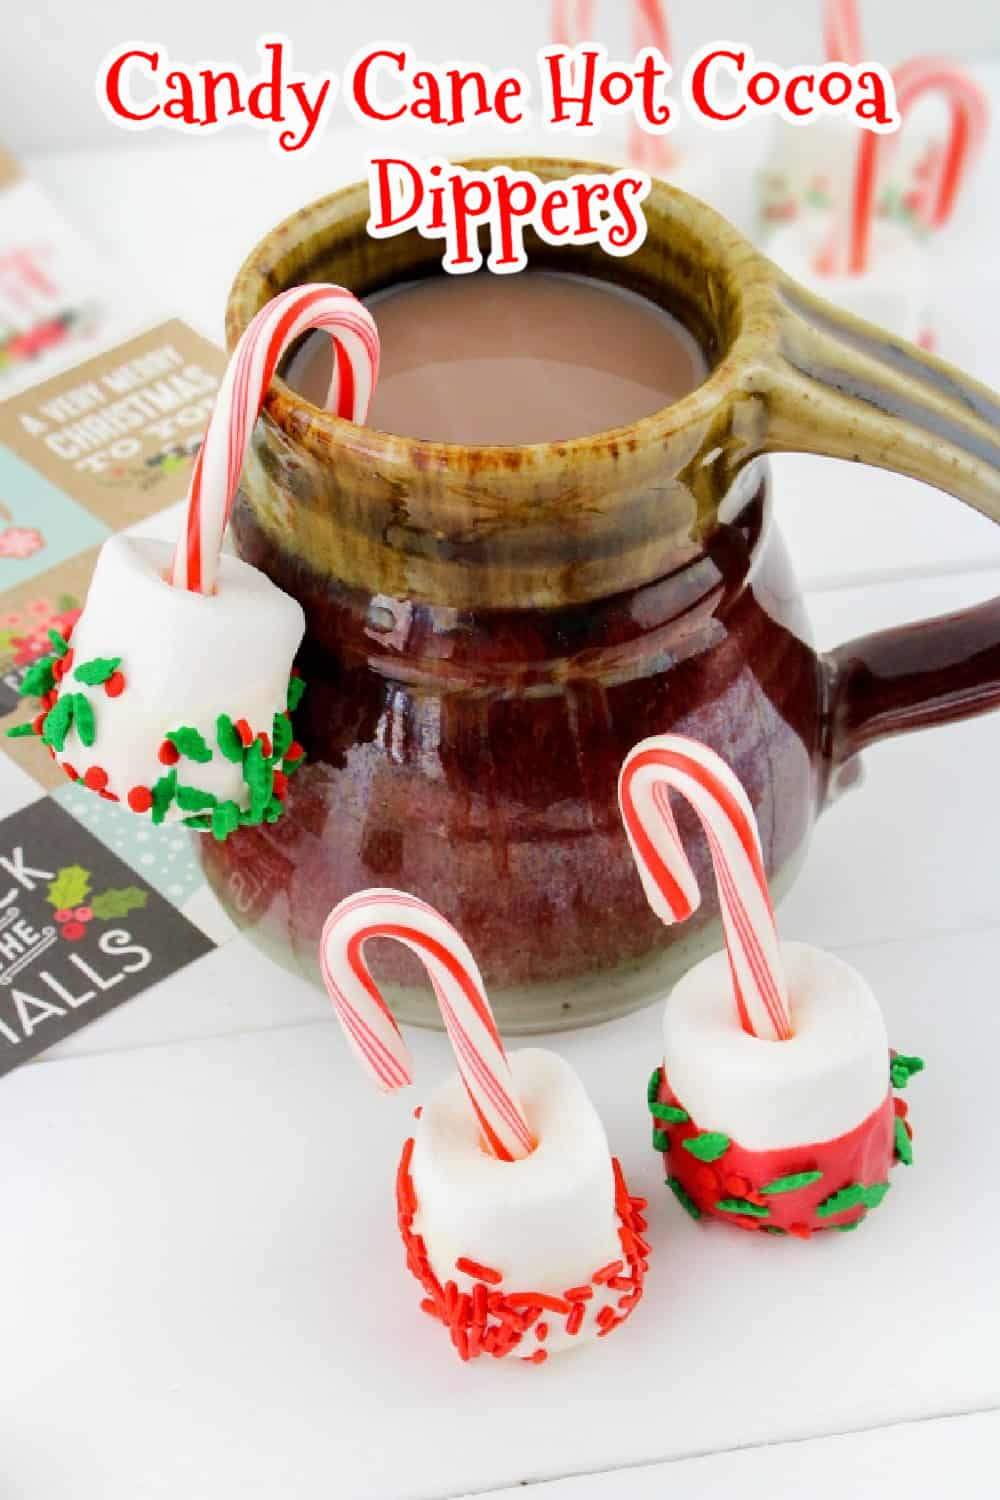 These jolly Candy Cane Hot Cocoa Dippers are a festive way to add marshmallows to hot chocolate. They're a fun way to melt a sweet and creamy marshmallow and to add a touch of peppermint to your hot cocoa. via @Mooreorlesscook